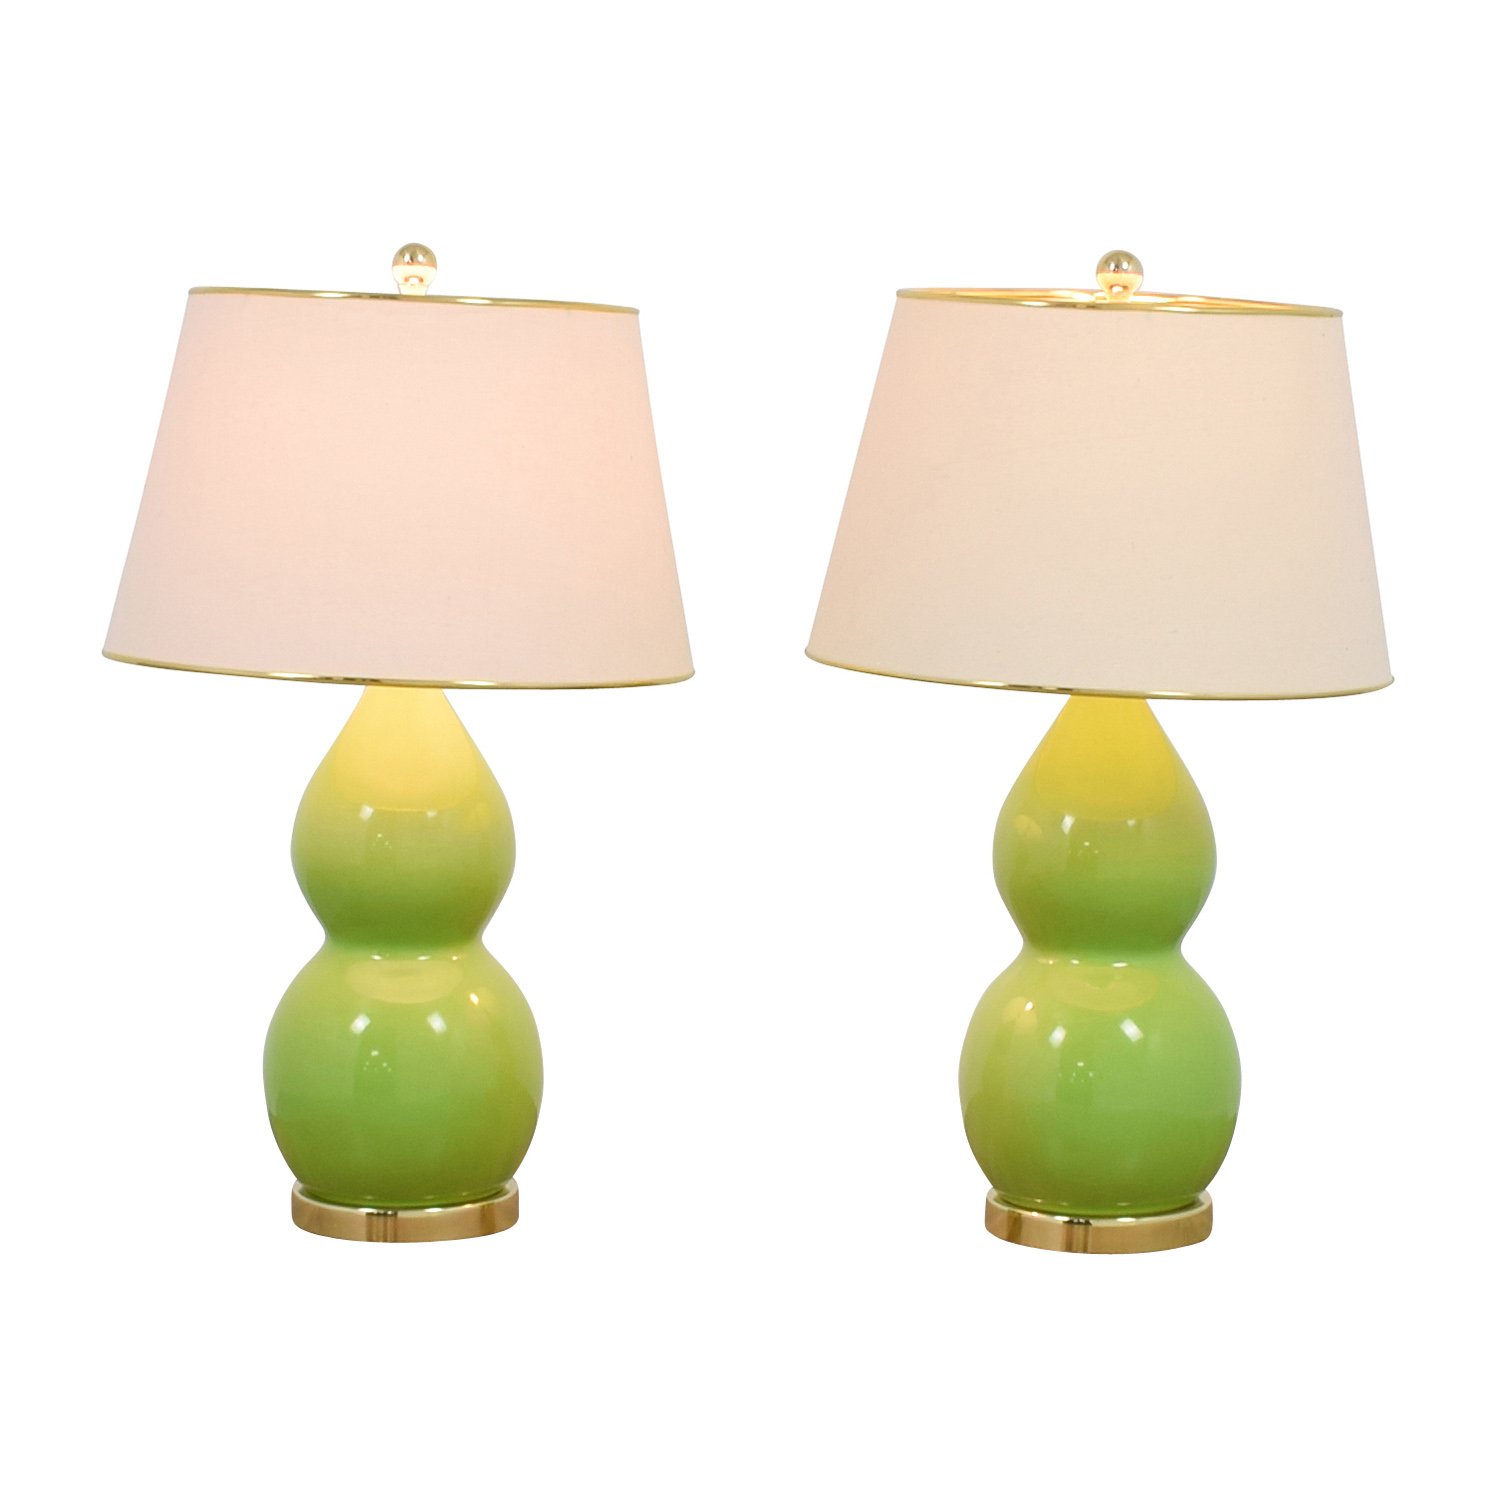 Safavieh Eva Double Green Table Lamps, Set of Two nj